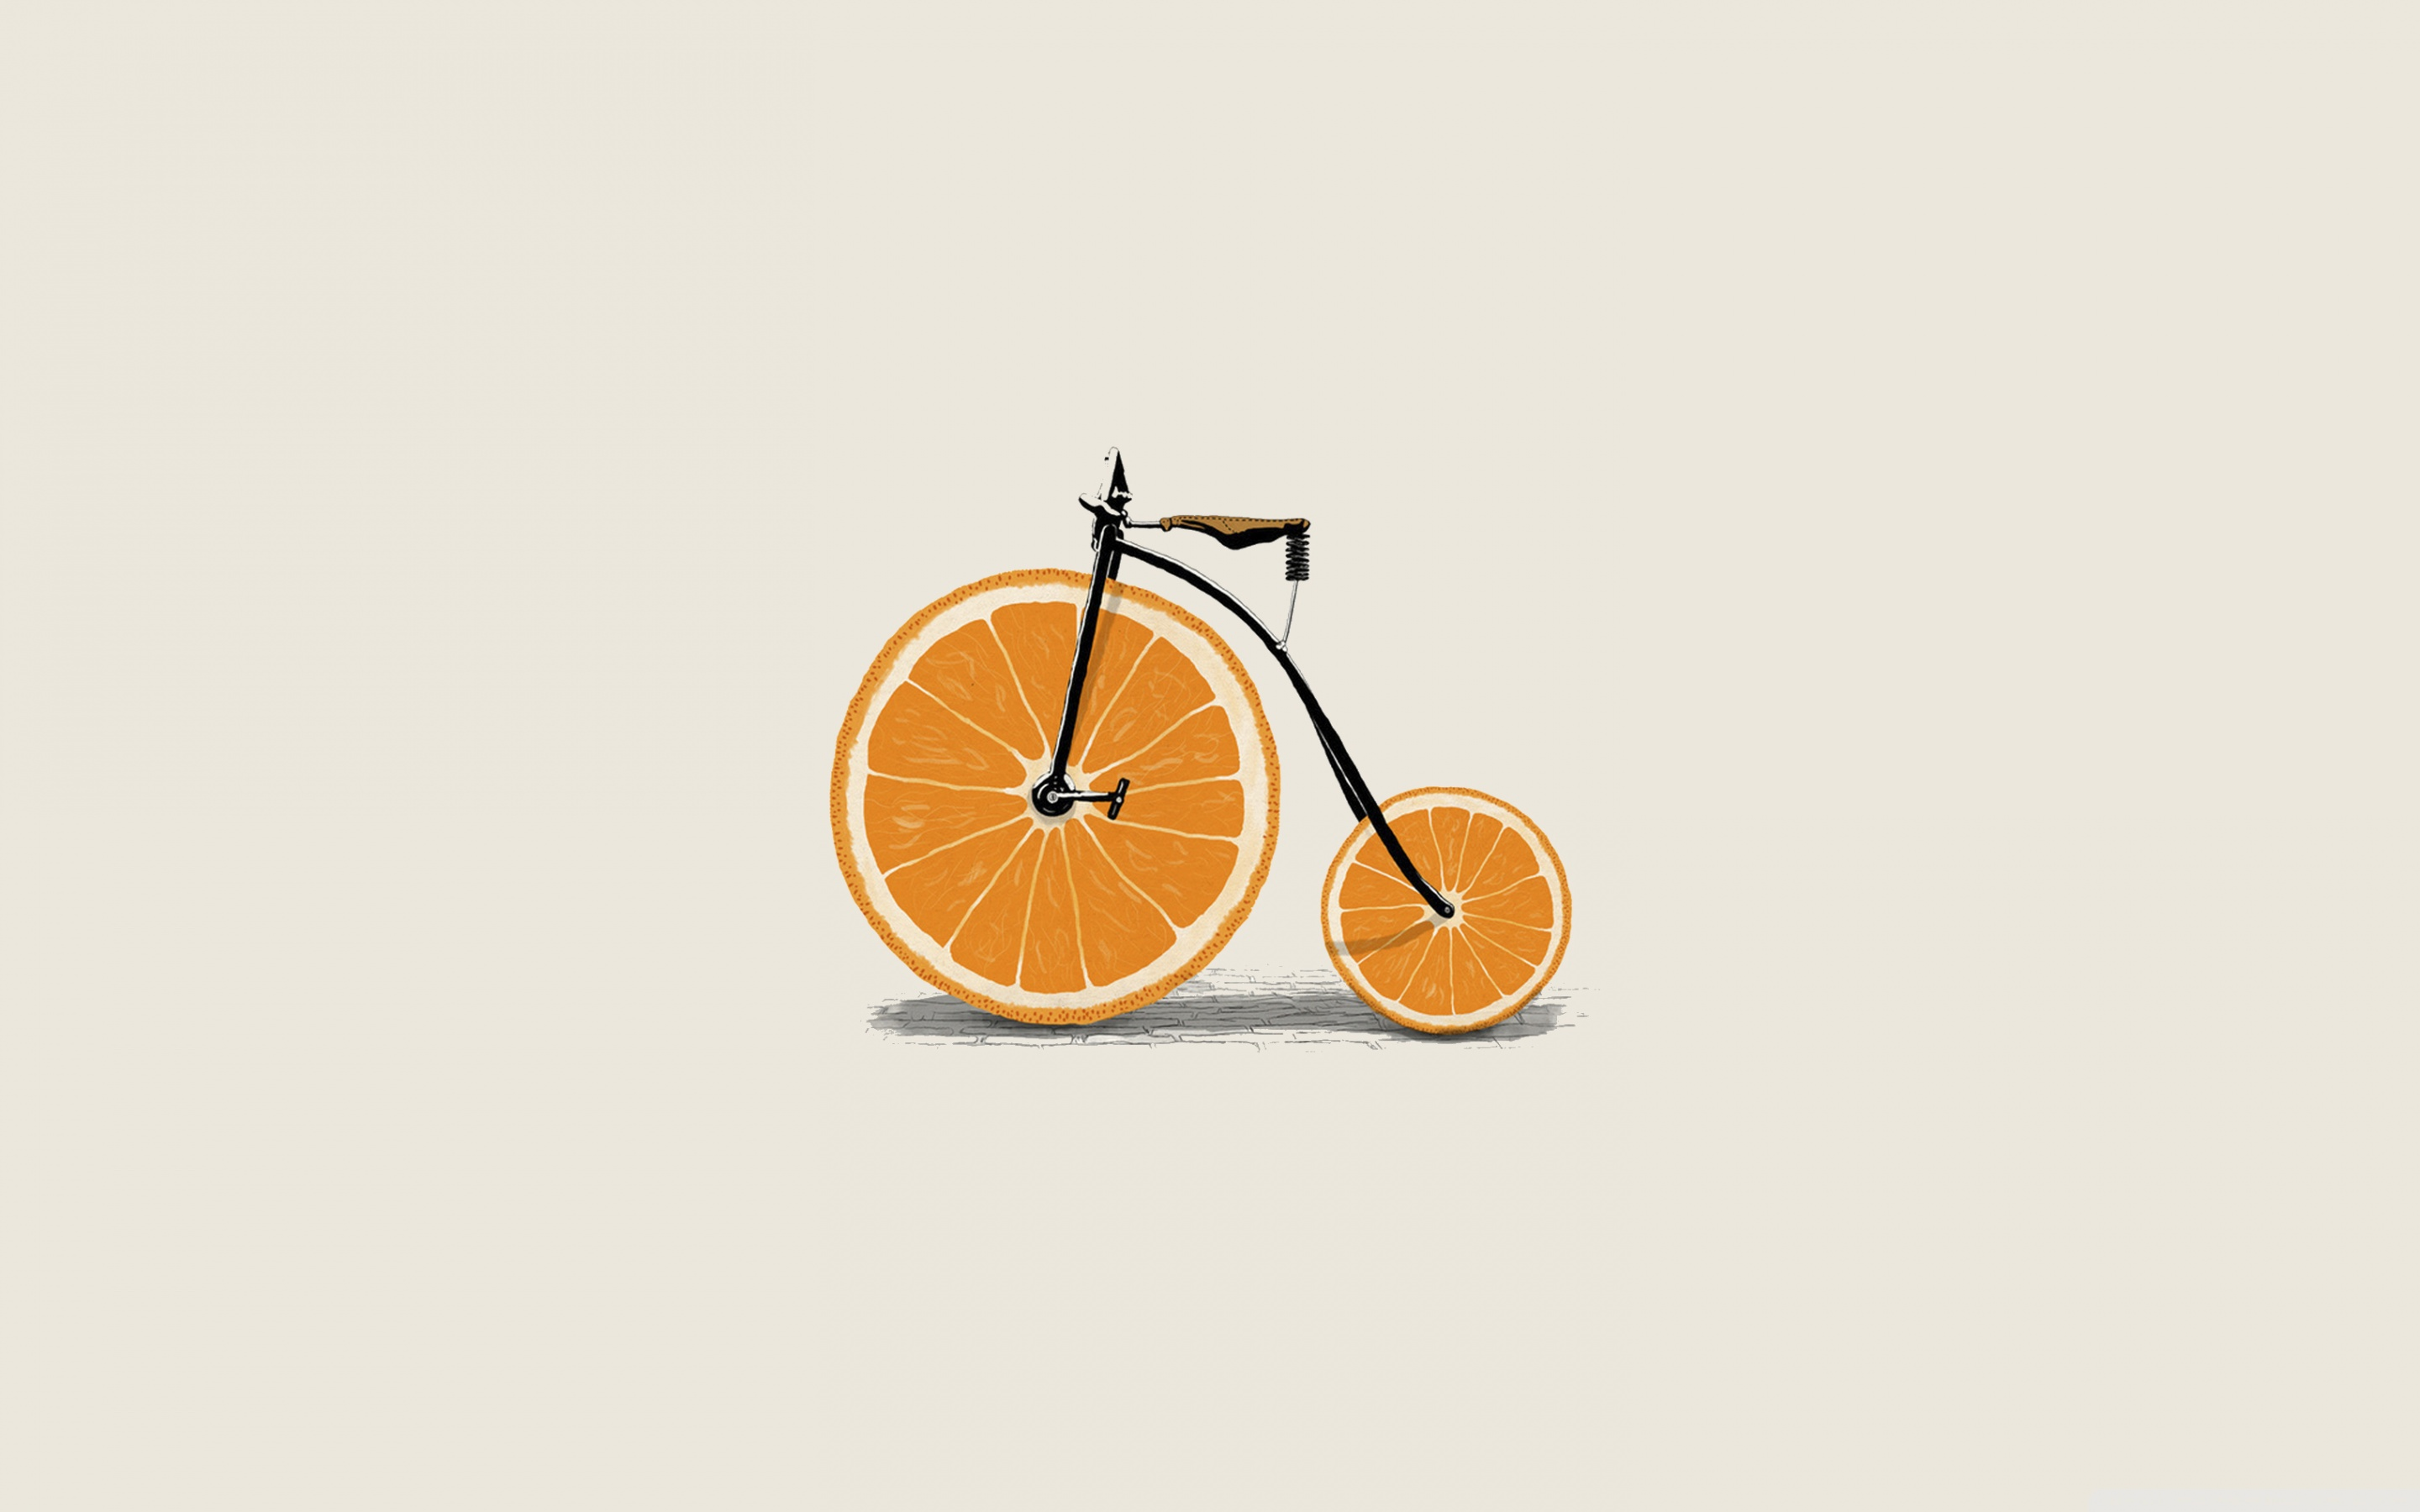 oranges-wheeled-bicycle-funny-hd-wallpaper